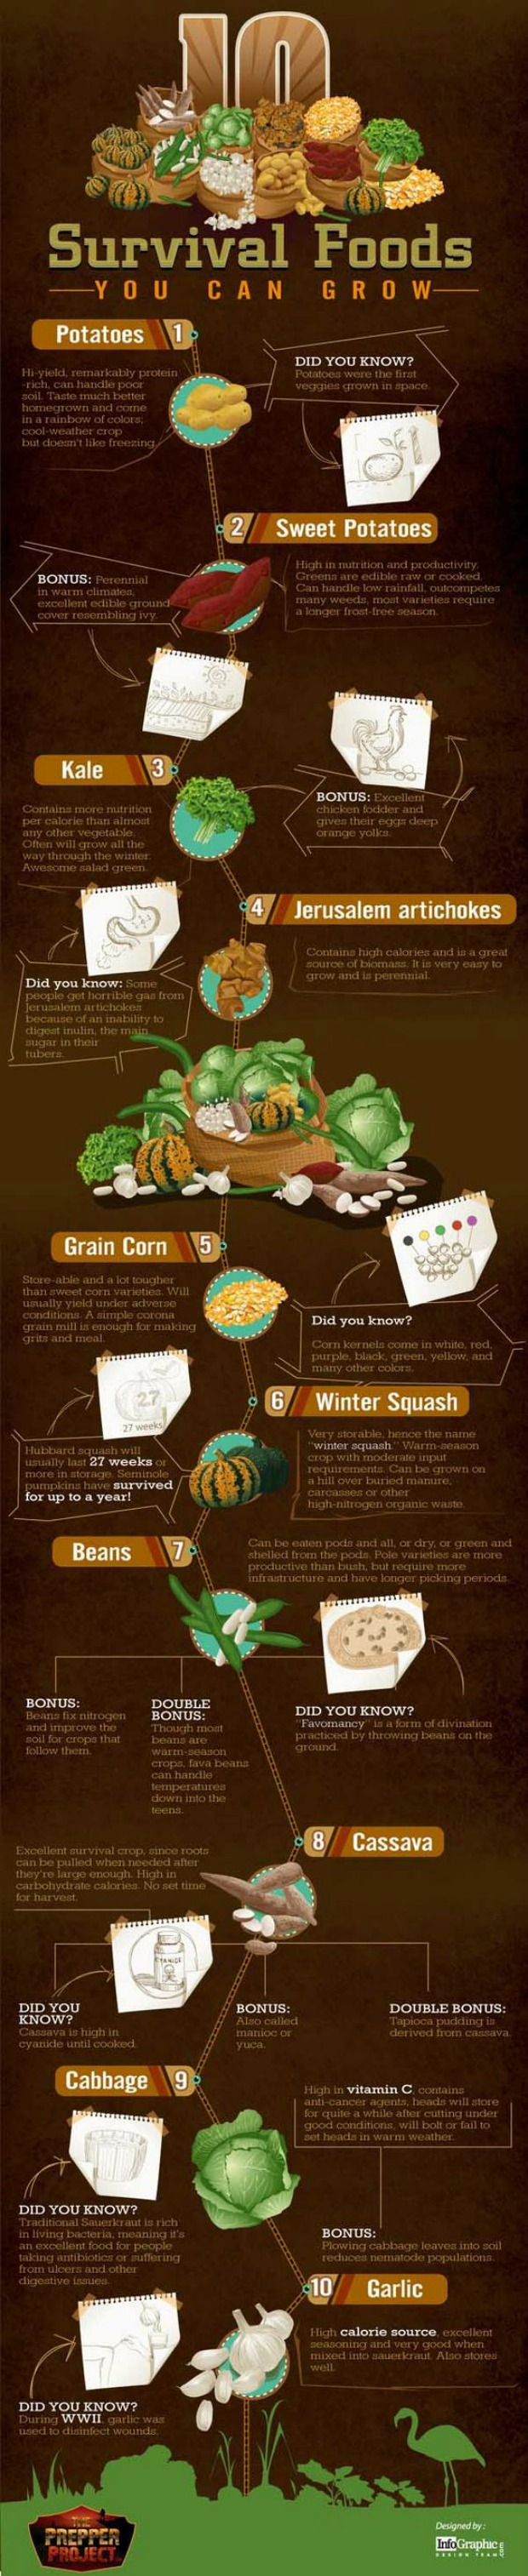 survival-foods-to-grow